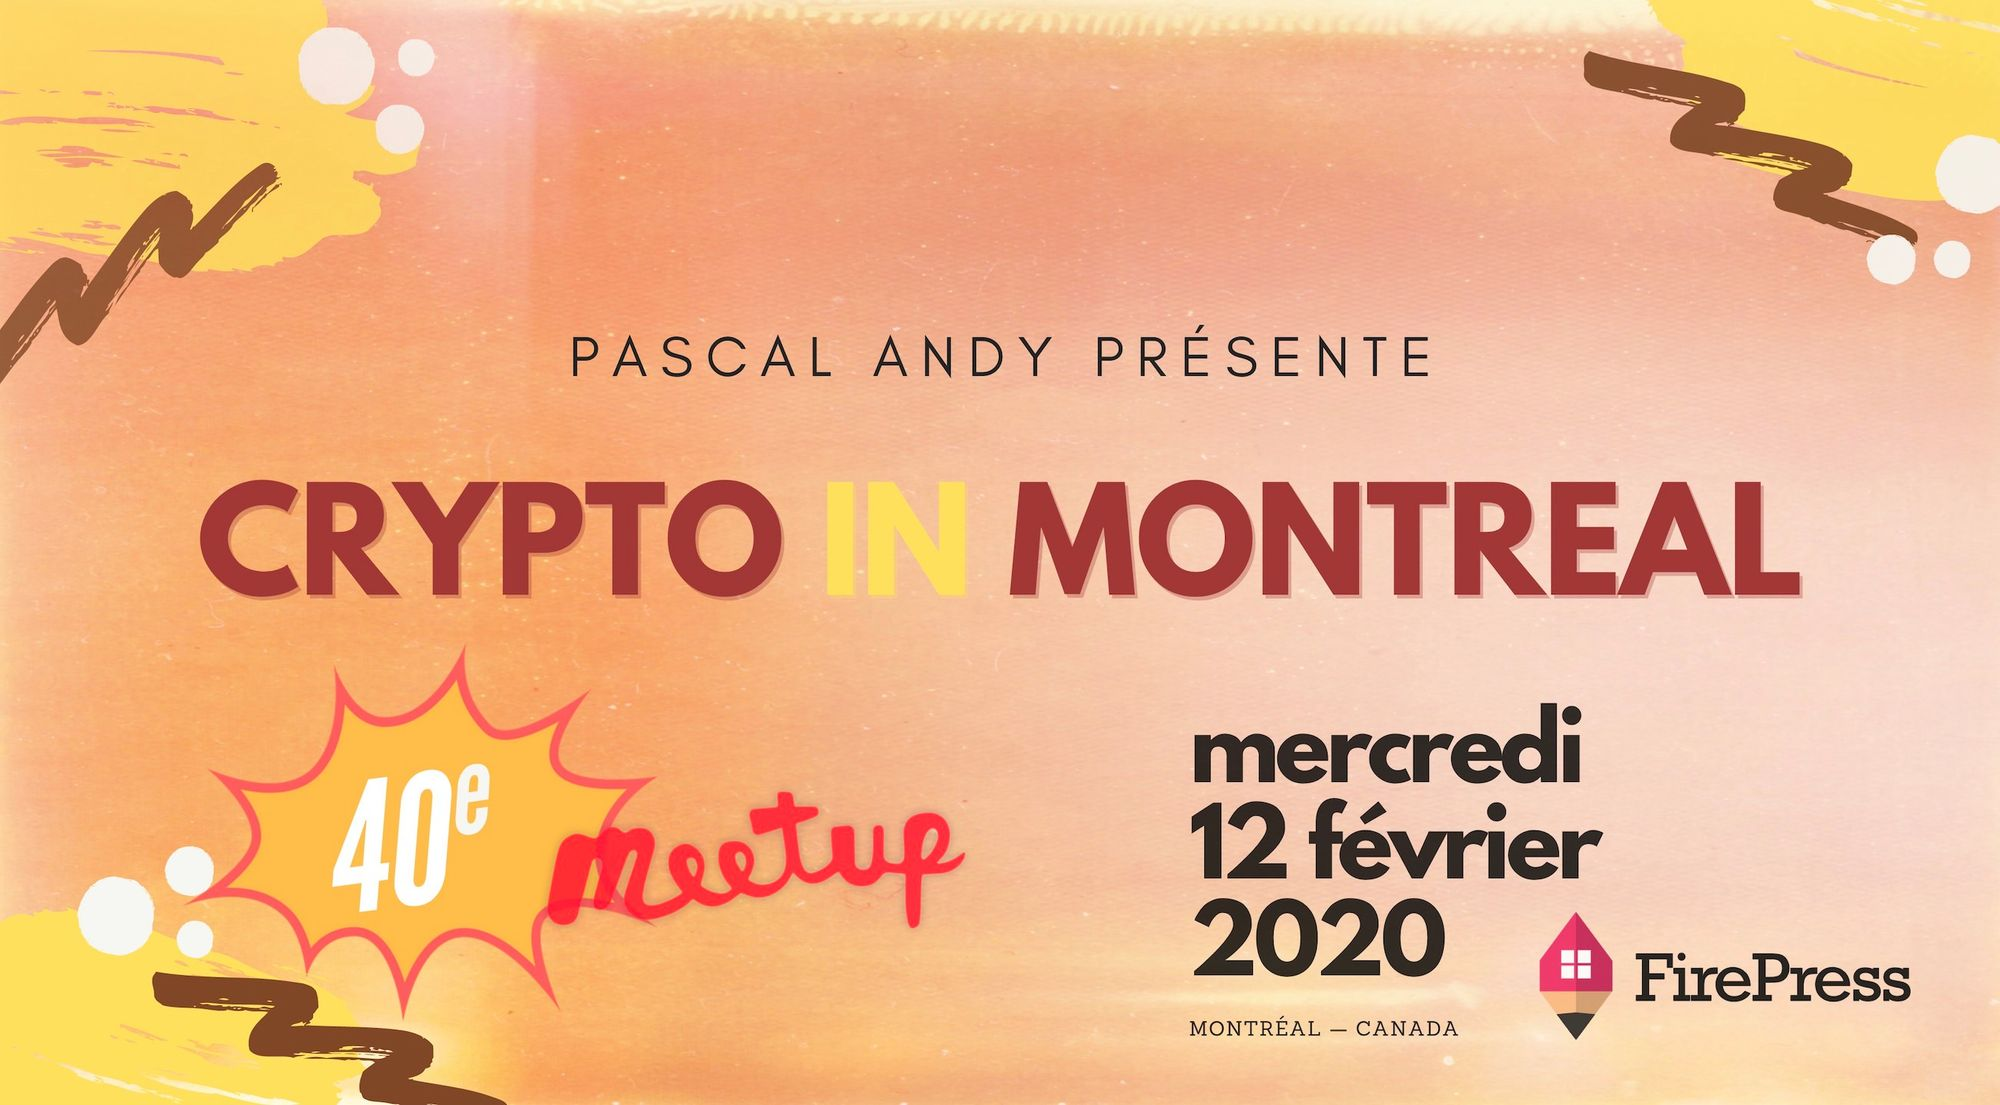 « Le futur est maintenant ». Une Introduction Au Blockchain et Aux Cryptos | CryptoInMontreal #40